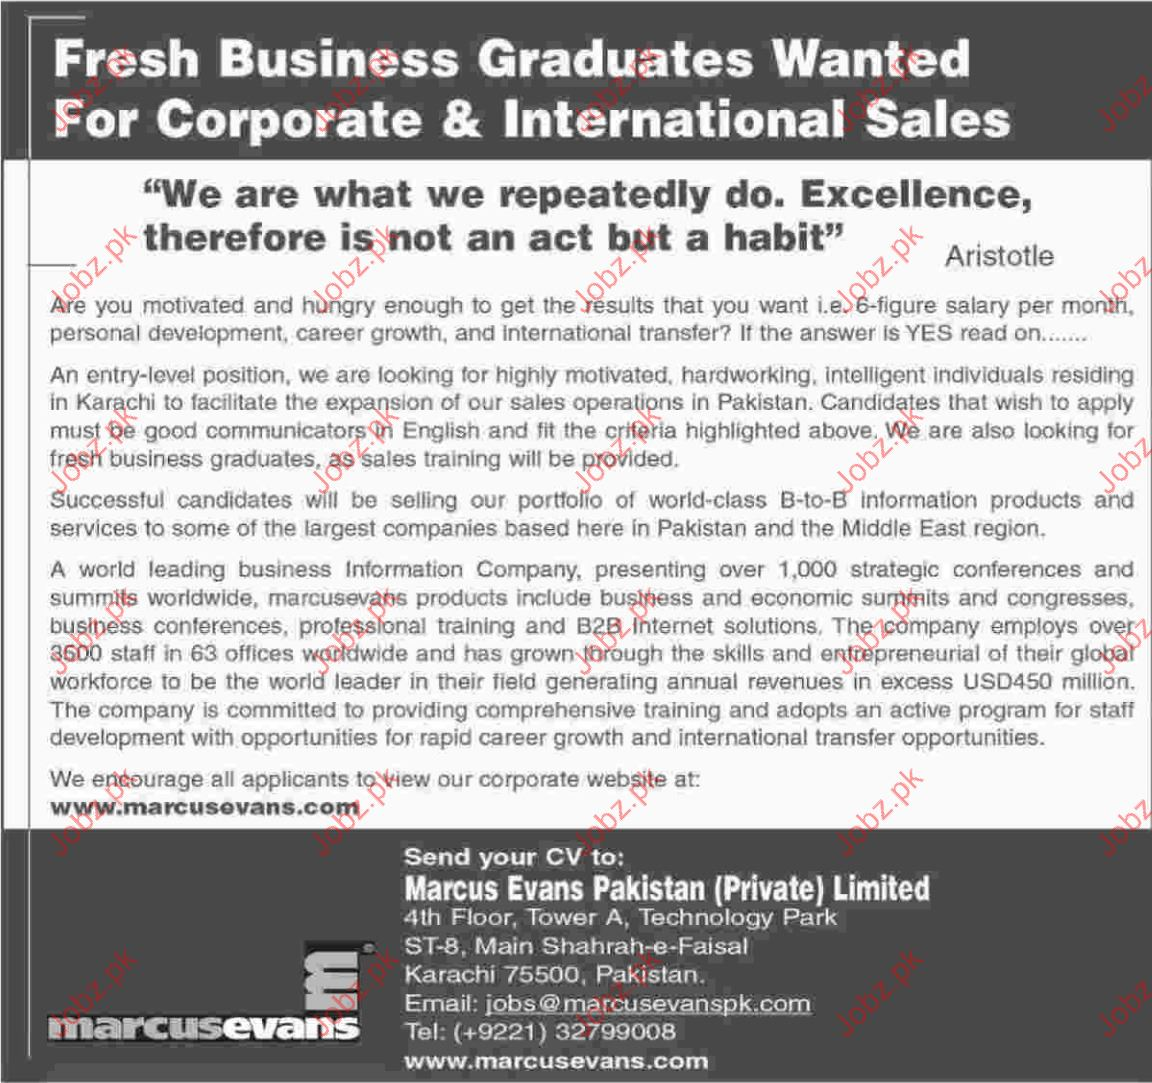 Marcus Evans Pakistan Ltd Careers